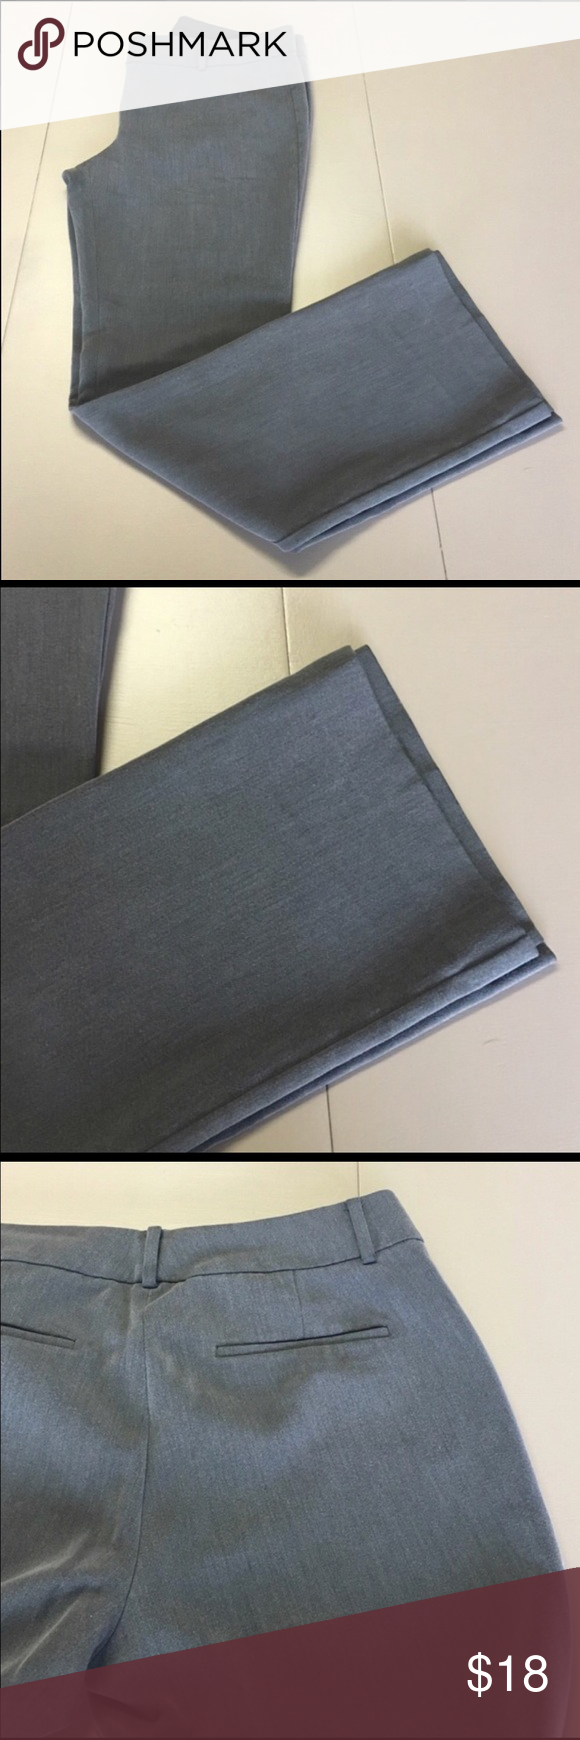 8406b1e2f2883f Ann Taylor Gray pants Size 12 Great condition gray pants, size 12. Straight  leg. *reposh- didn't quite fit :( Bundles and reasonable offers are  encouraged ...